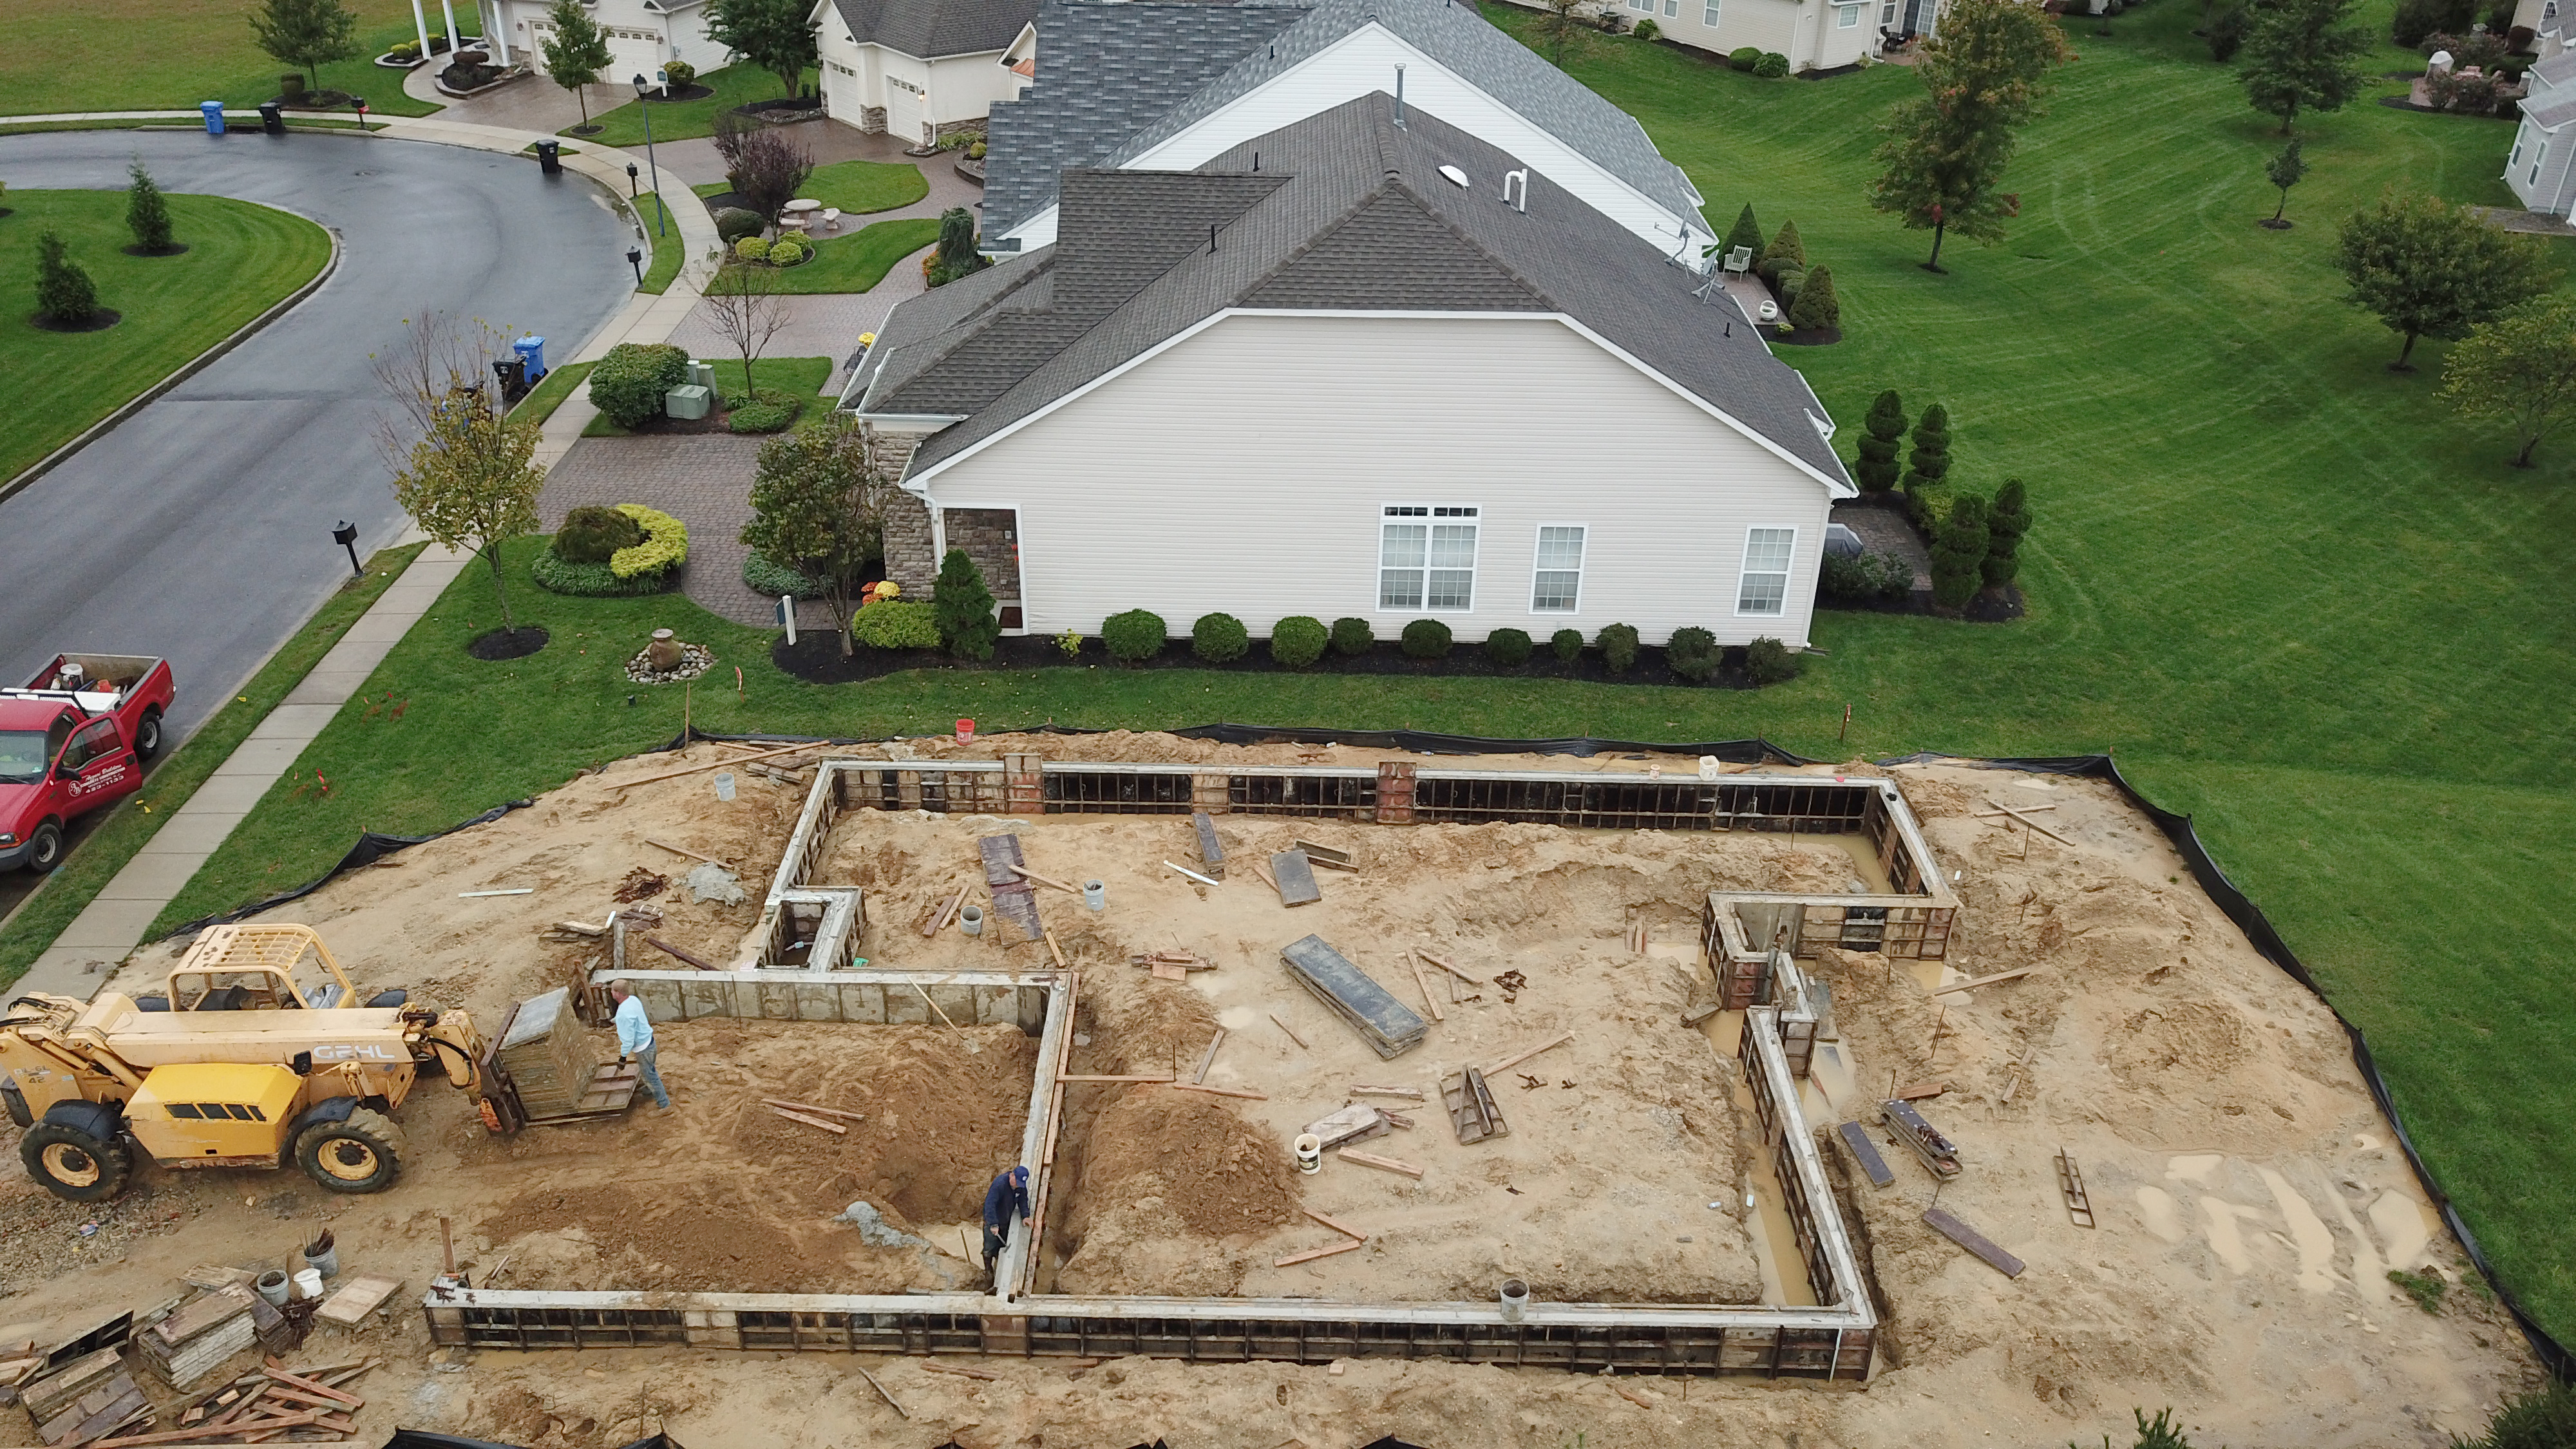 Workers prepare the foundation of a new home in Mantua Township, South Jersey, where builder Bruce Paparone is building an active adult community. Soon, they will use lumber to to frame the house.